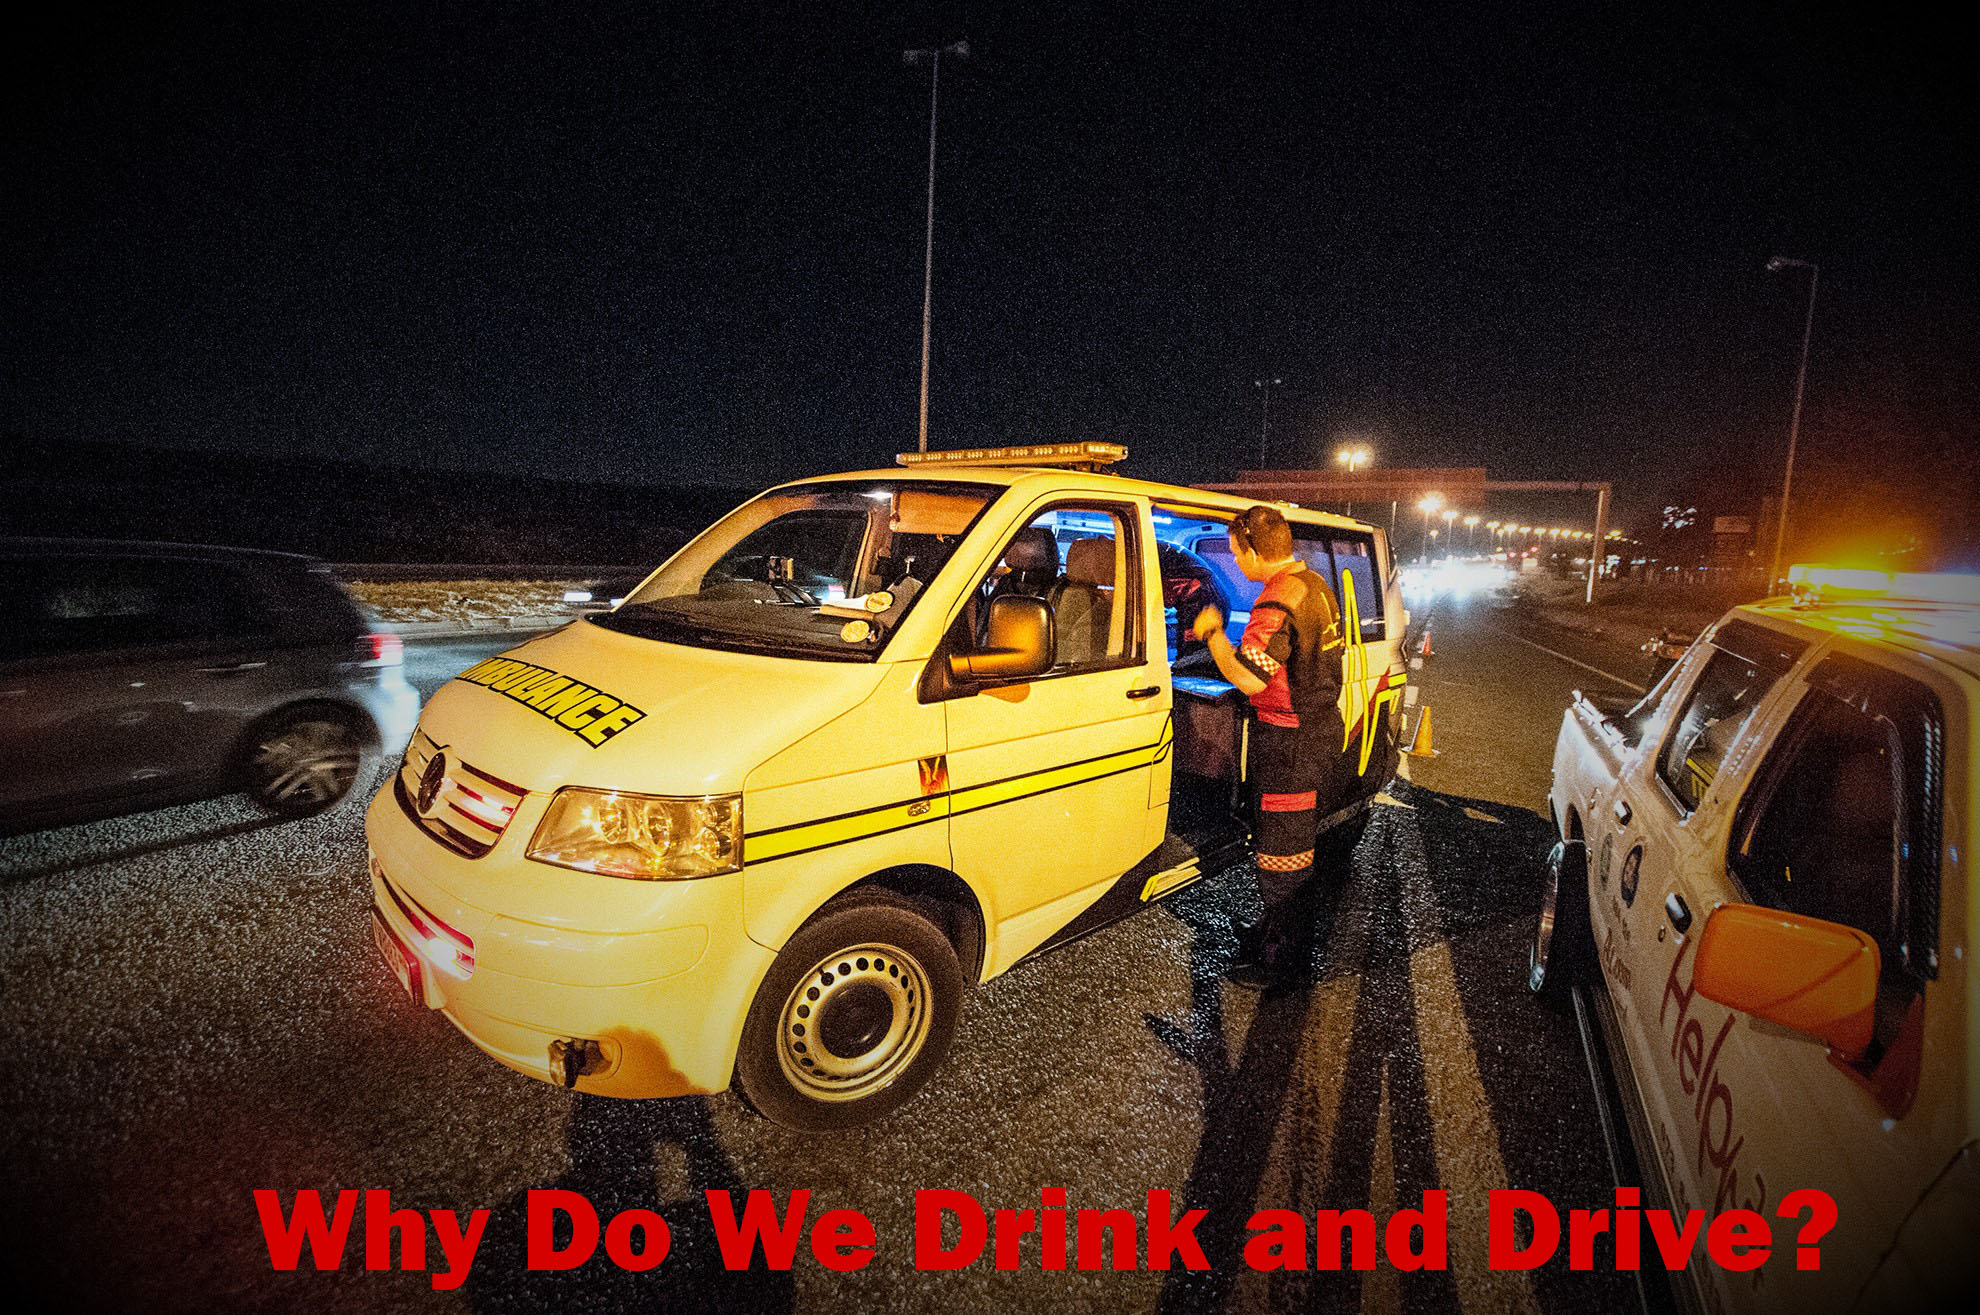 Why_Do_We_Drink_and_Drive